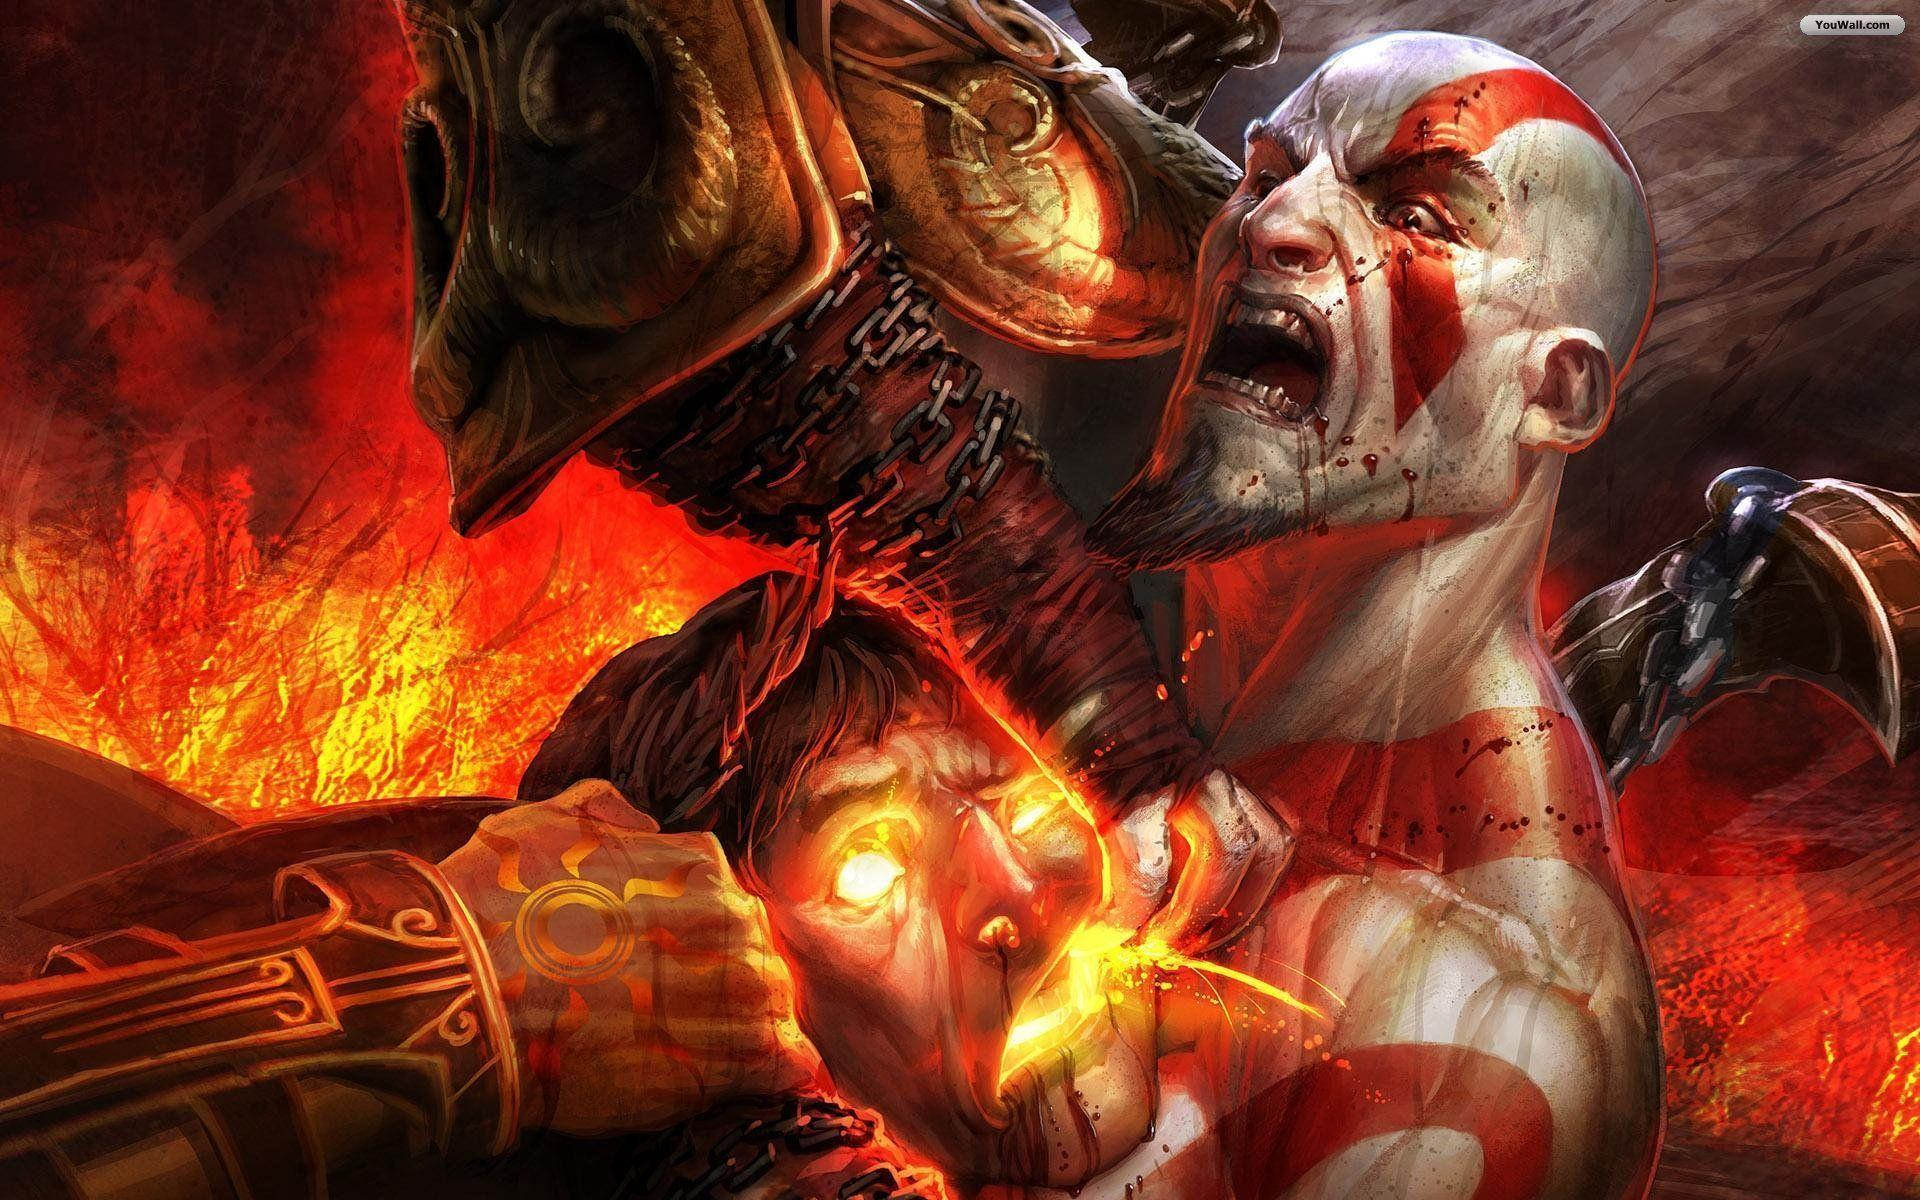 Black wallpapers 1080p wallpaper cave - God Of War 3 Hades Wallpaper Images Amp Pictures Becuo